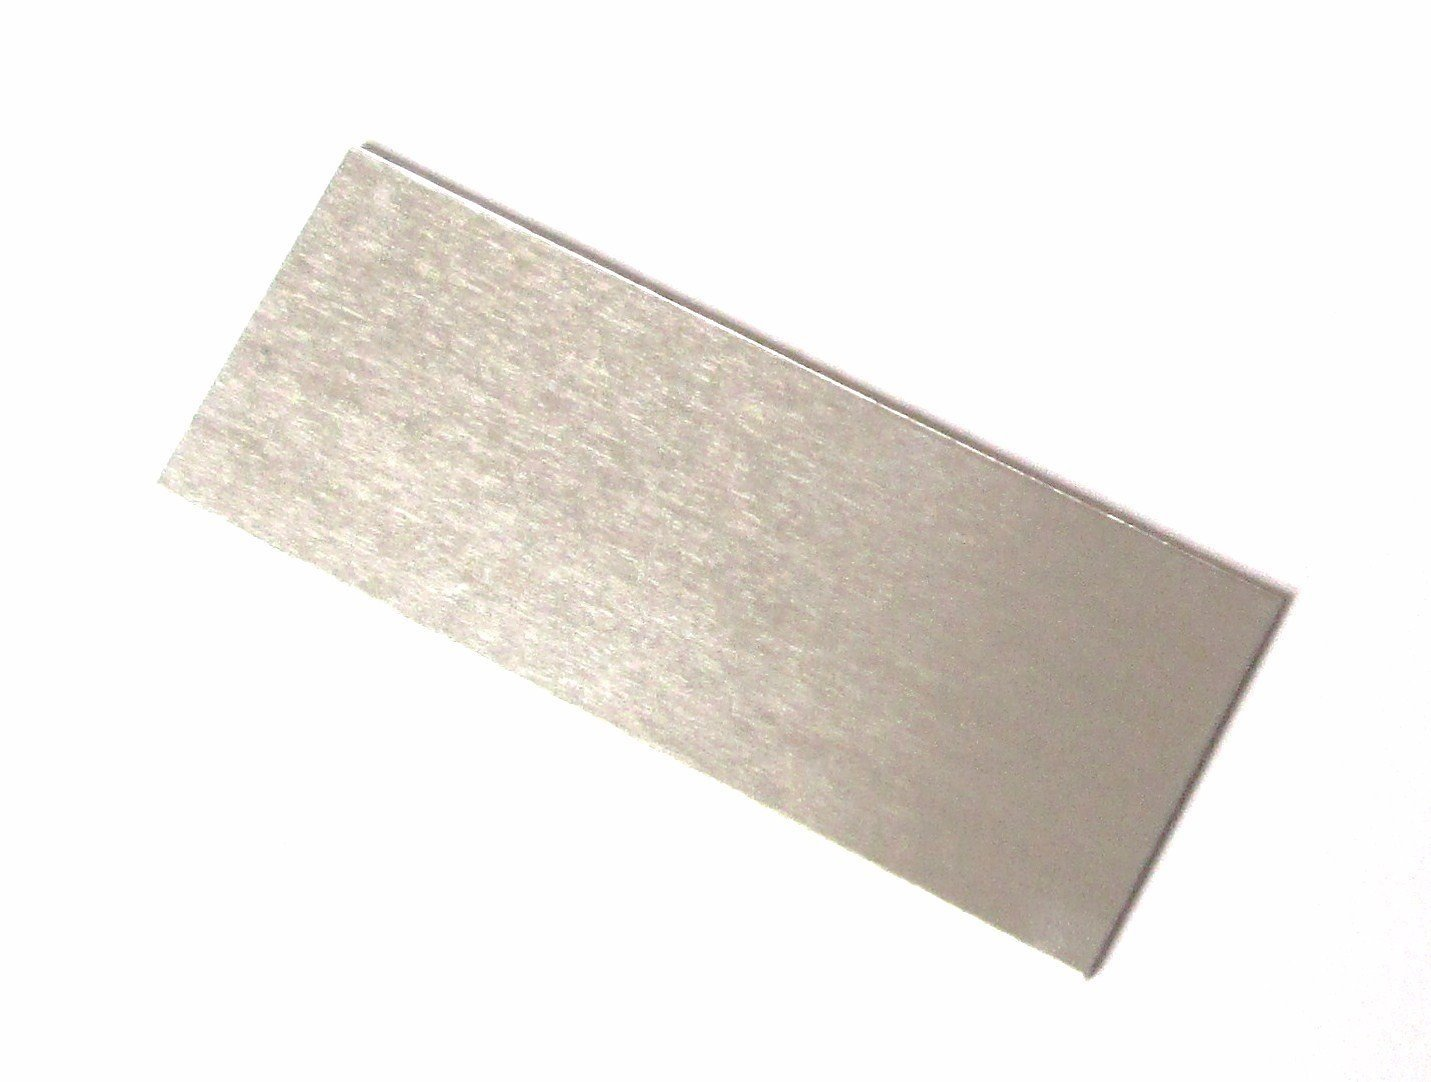 0.5mm Thick Aluminium Sheet 250mm x 250mm (Various Sizes Available) (50mm x 50mm) TM Metalworks